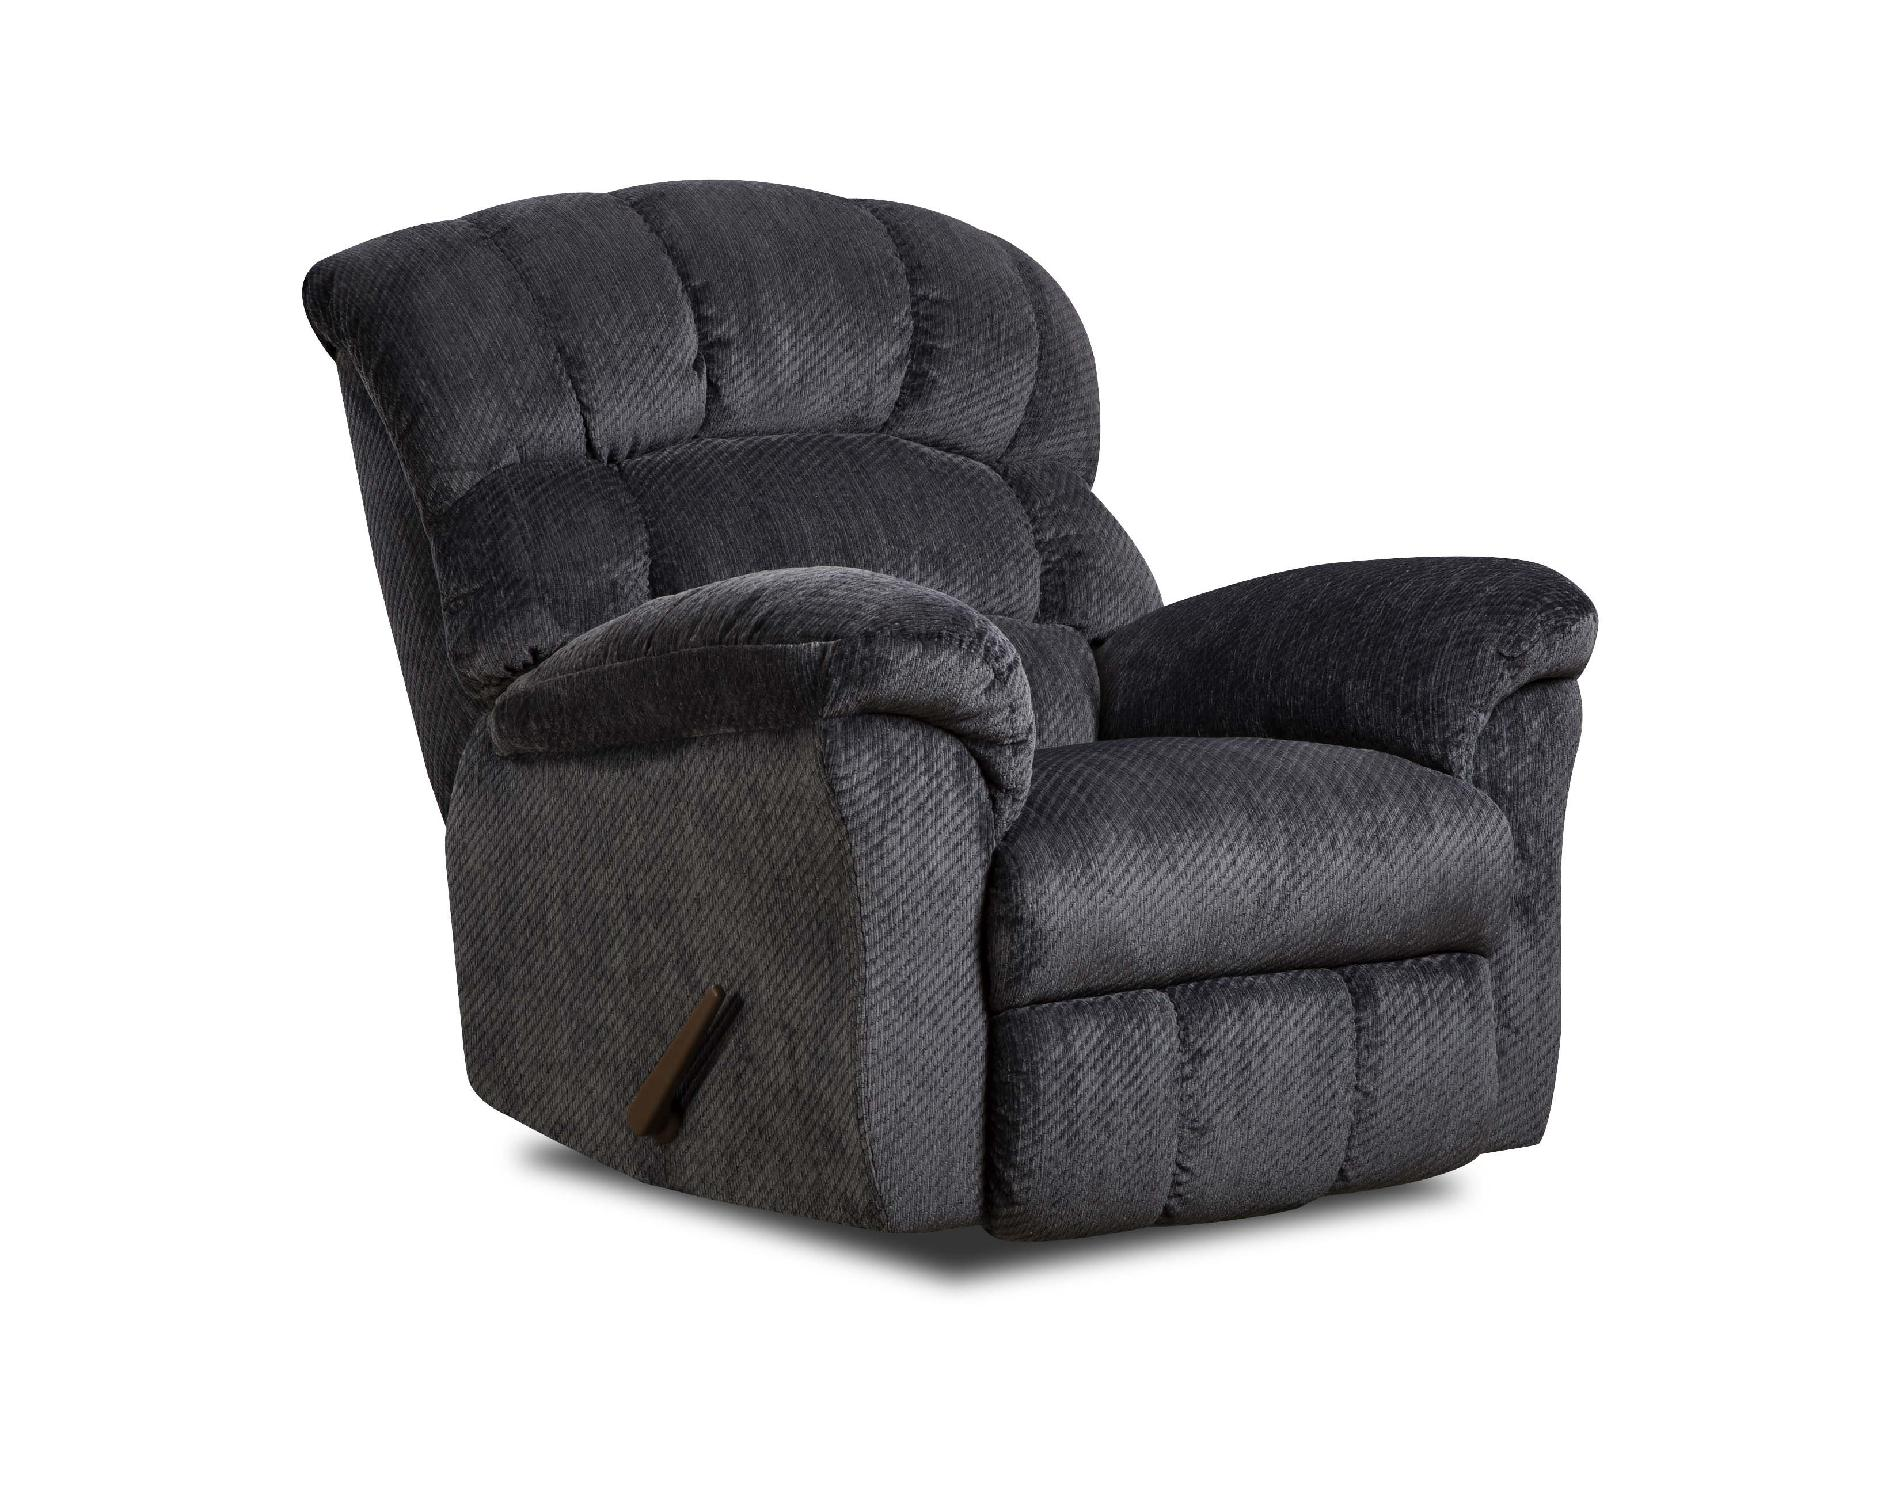 sears recliner chairs best outdoor lounge 2018 simmons upholstery 558 victor navy outlet